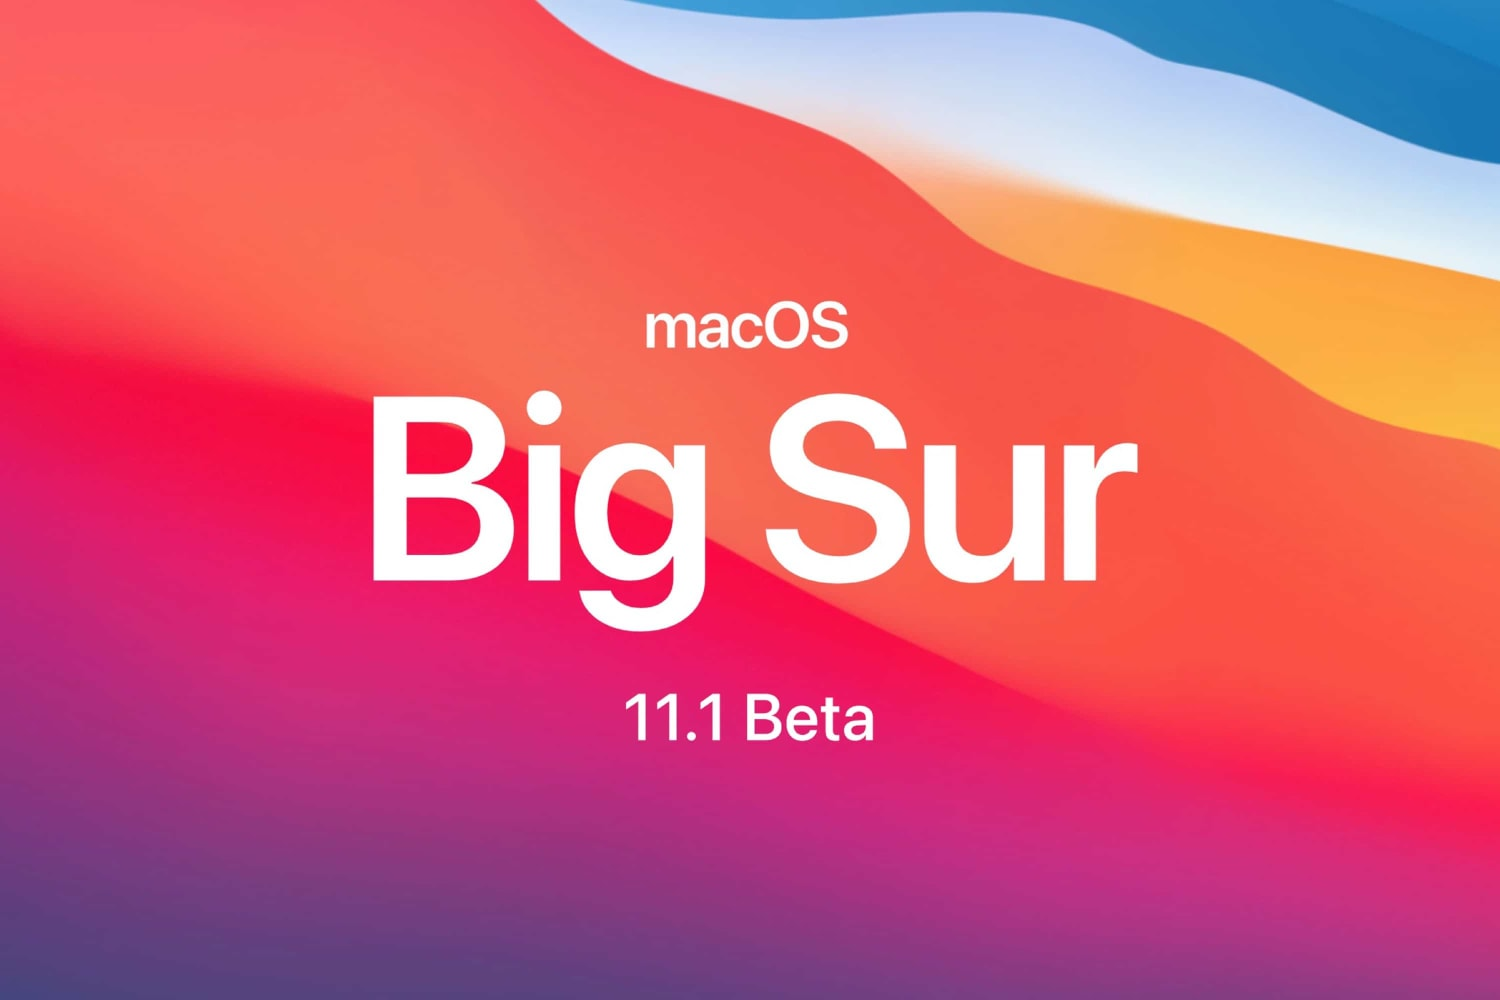 macos-11-1-big-sur-second-beta-now-available-to-developers-20201203-1